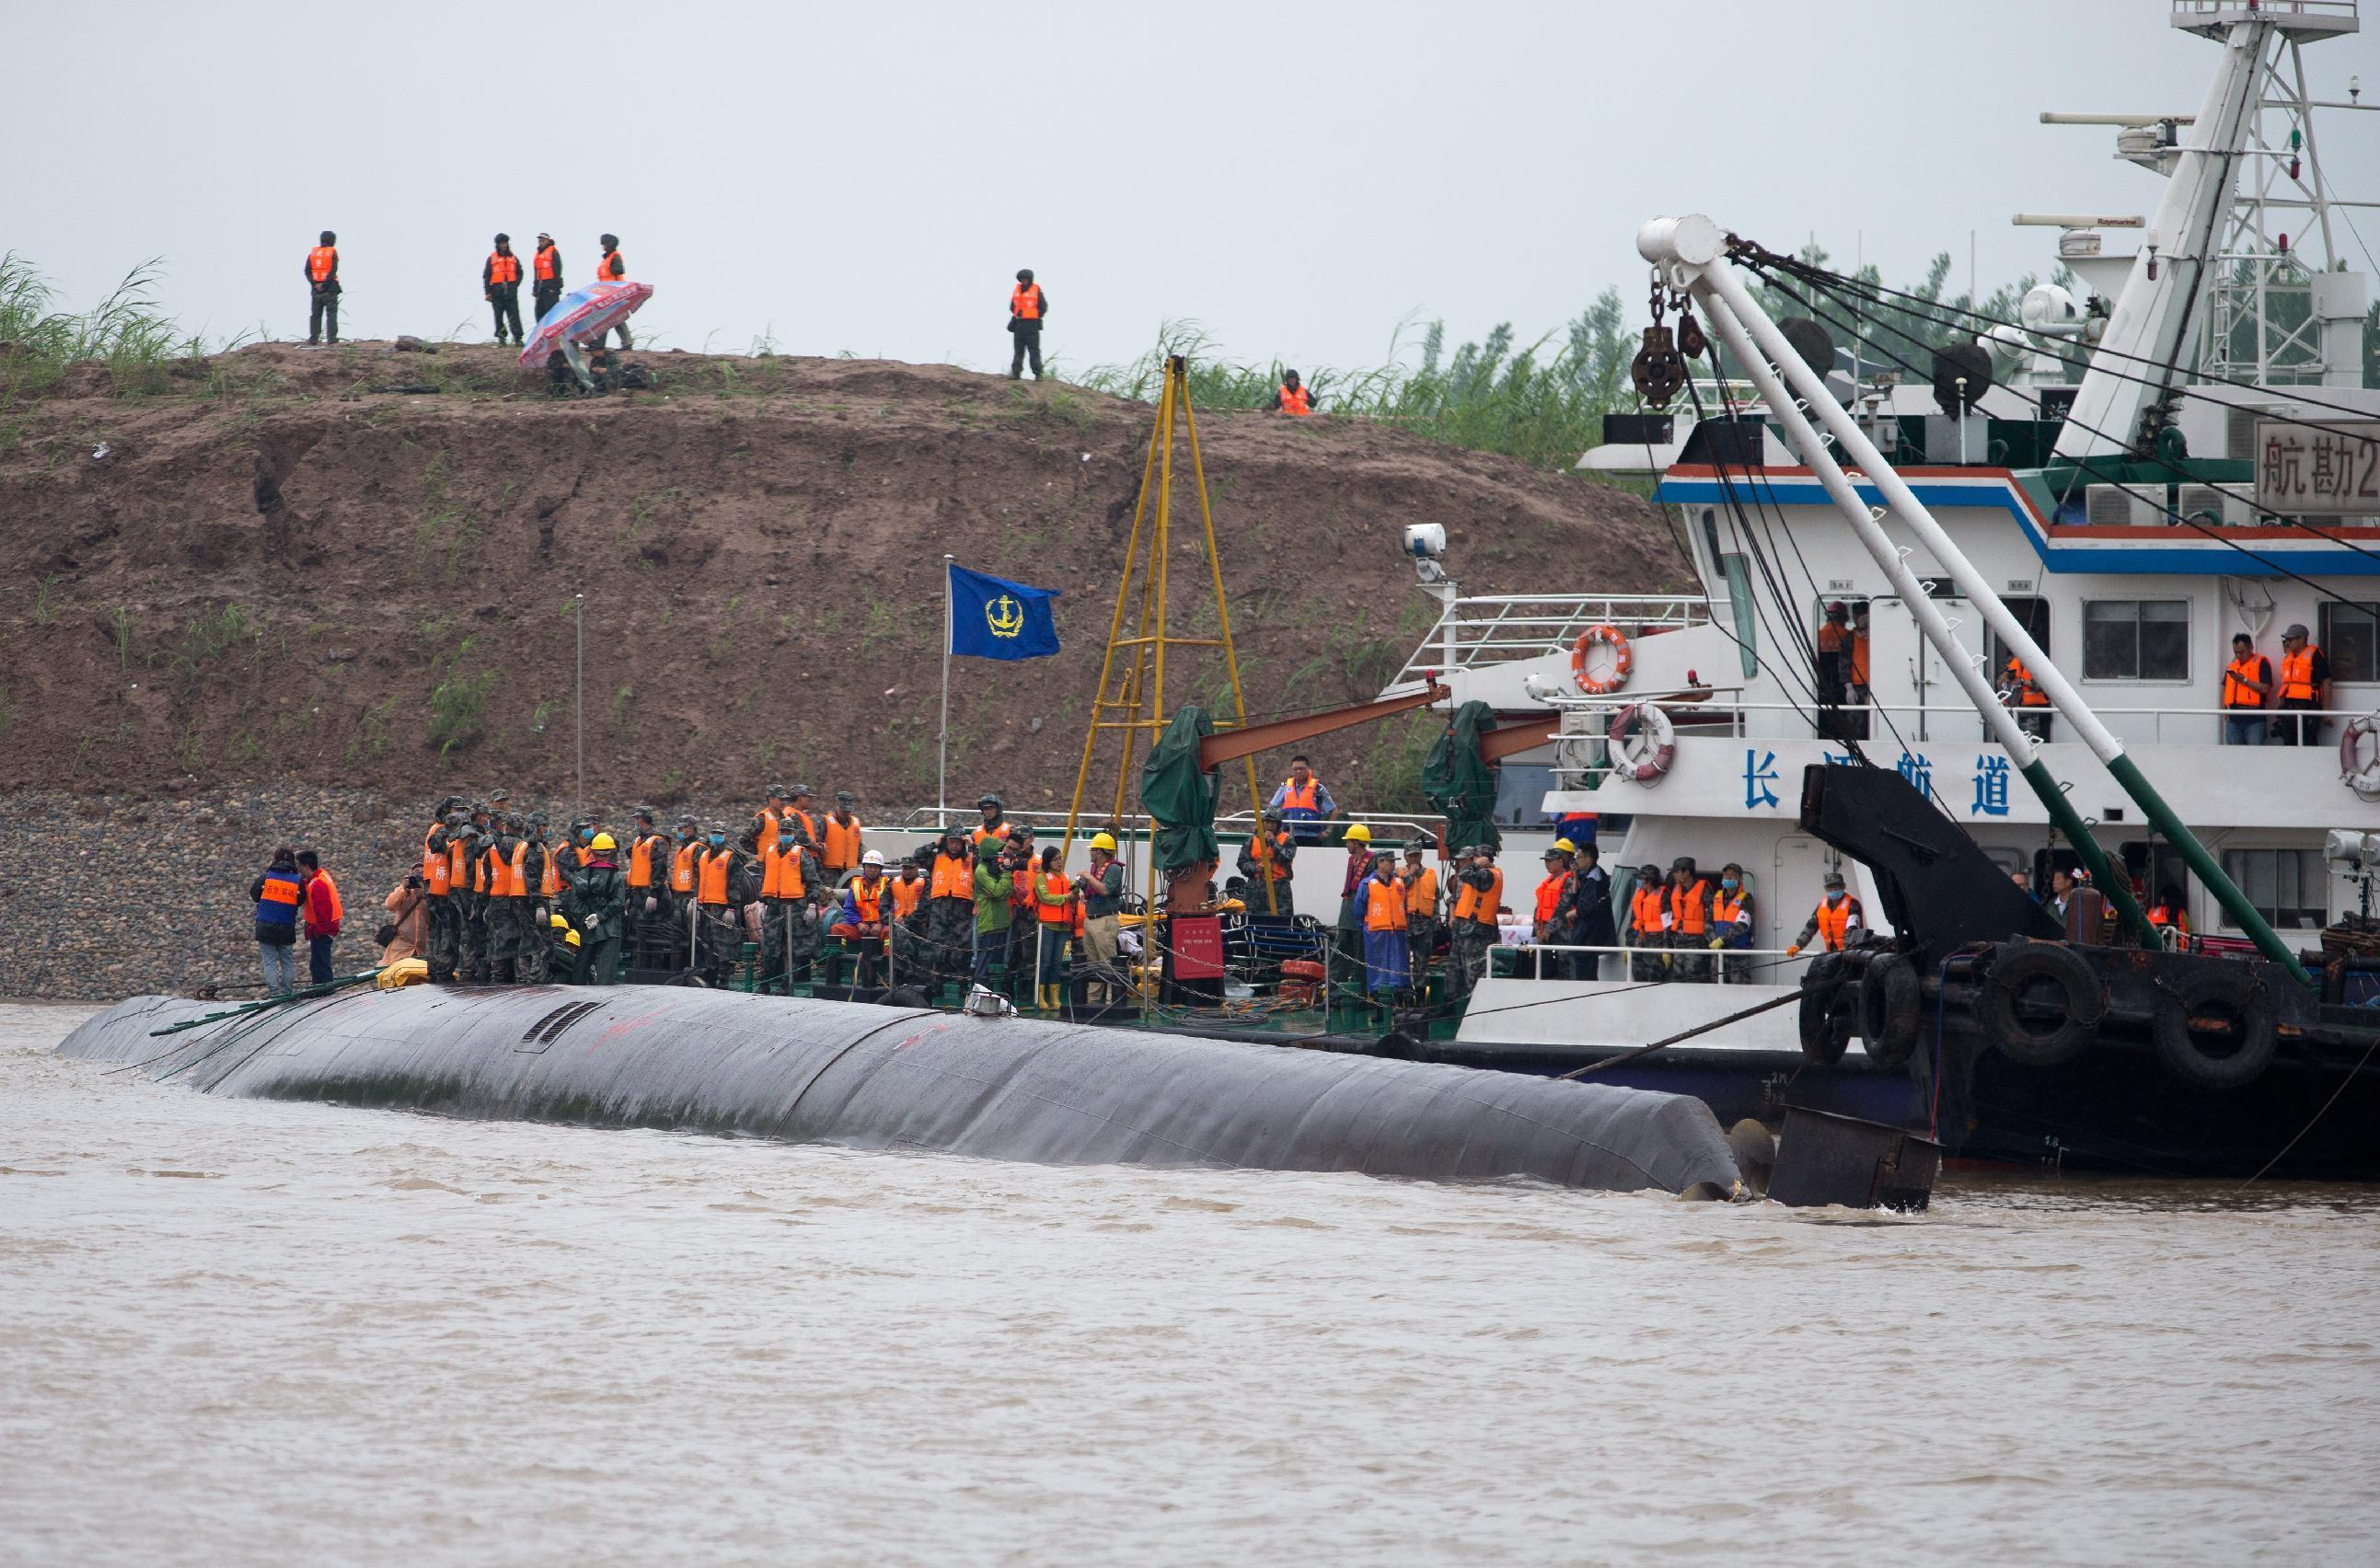 The Latest on China Boat Sinking: Ship cited for violations